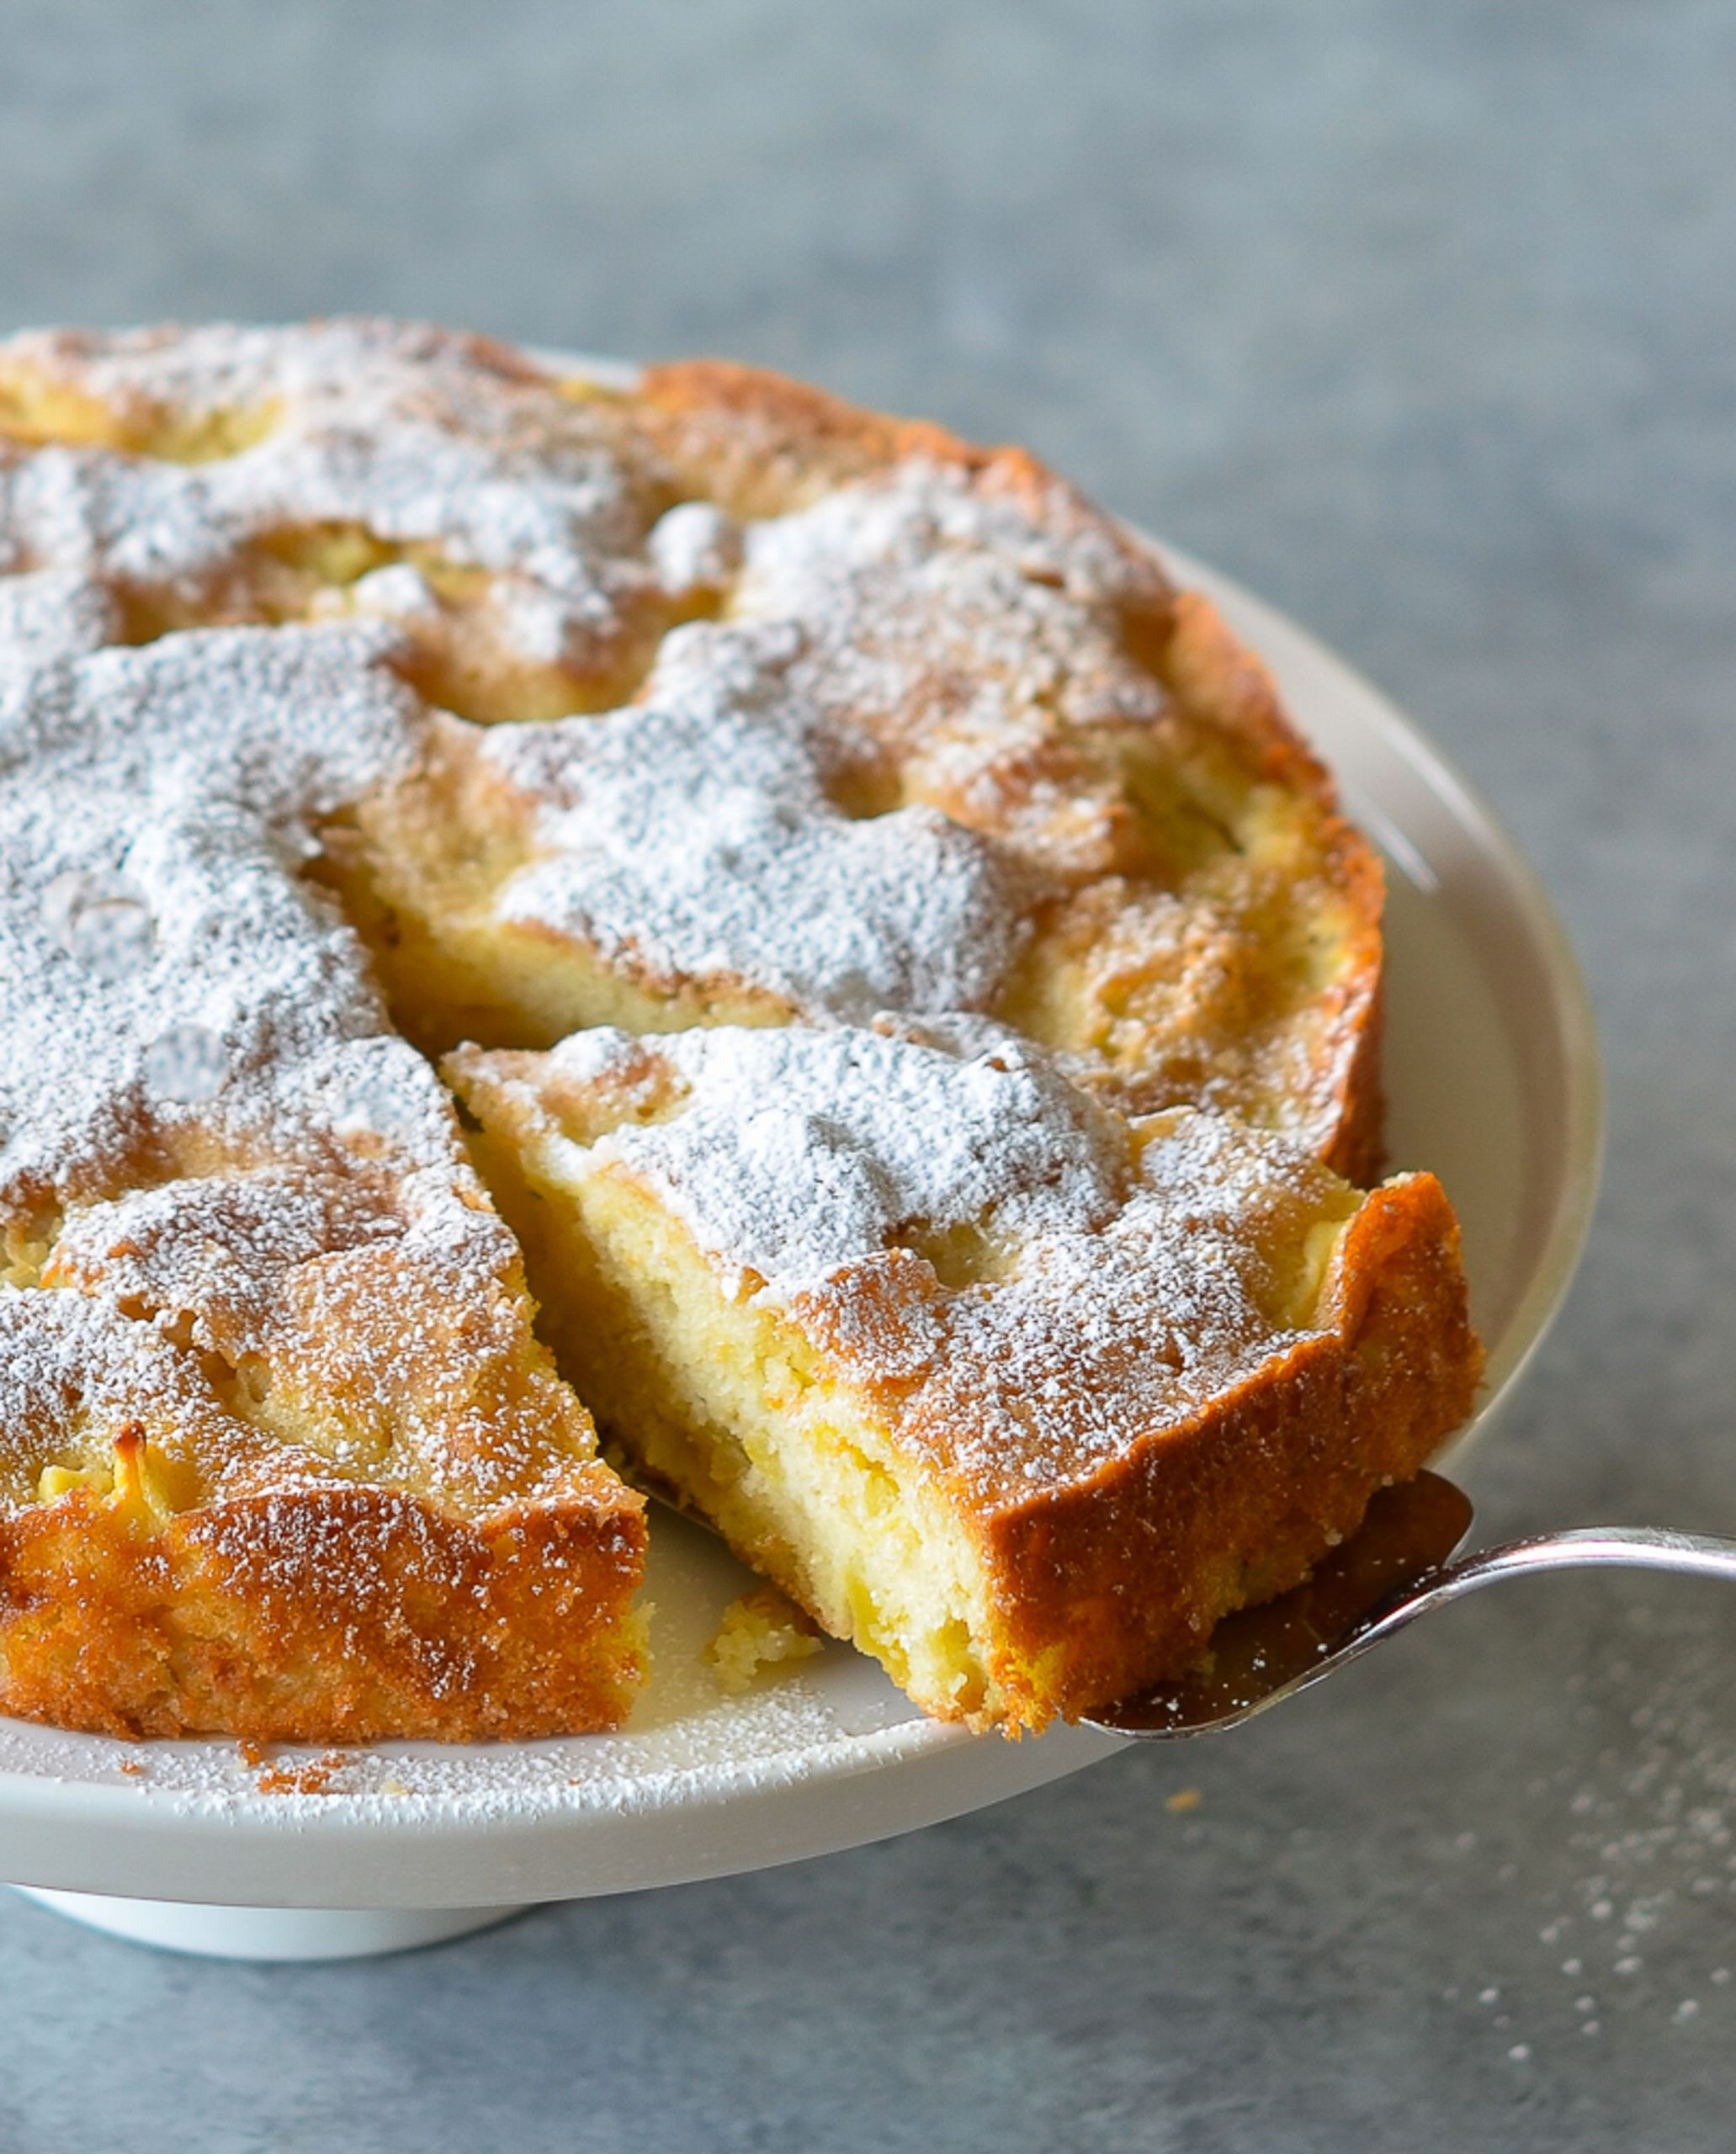 French Apple Cake - Recipes Using Cooking Apples Uk